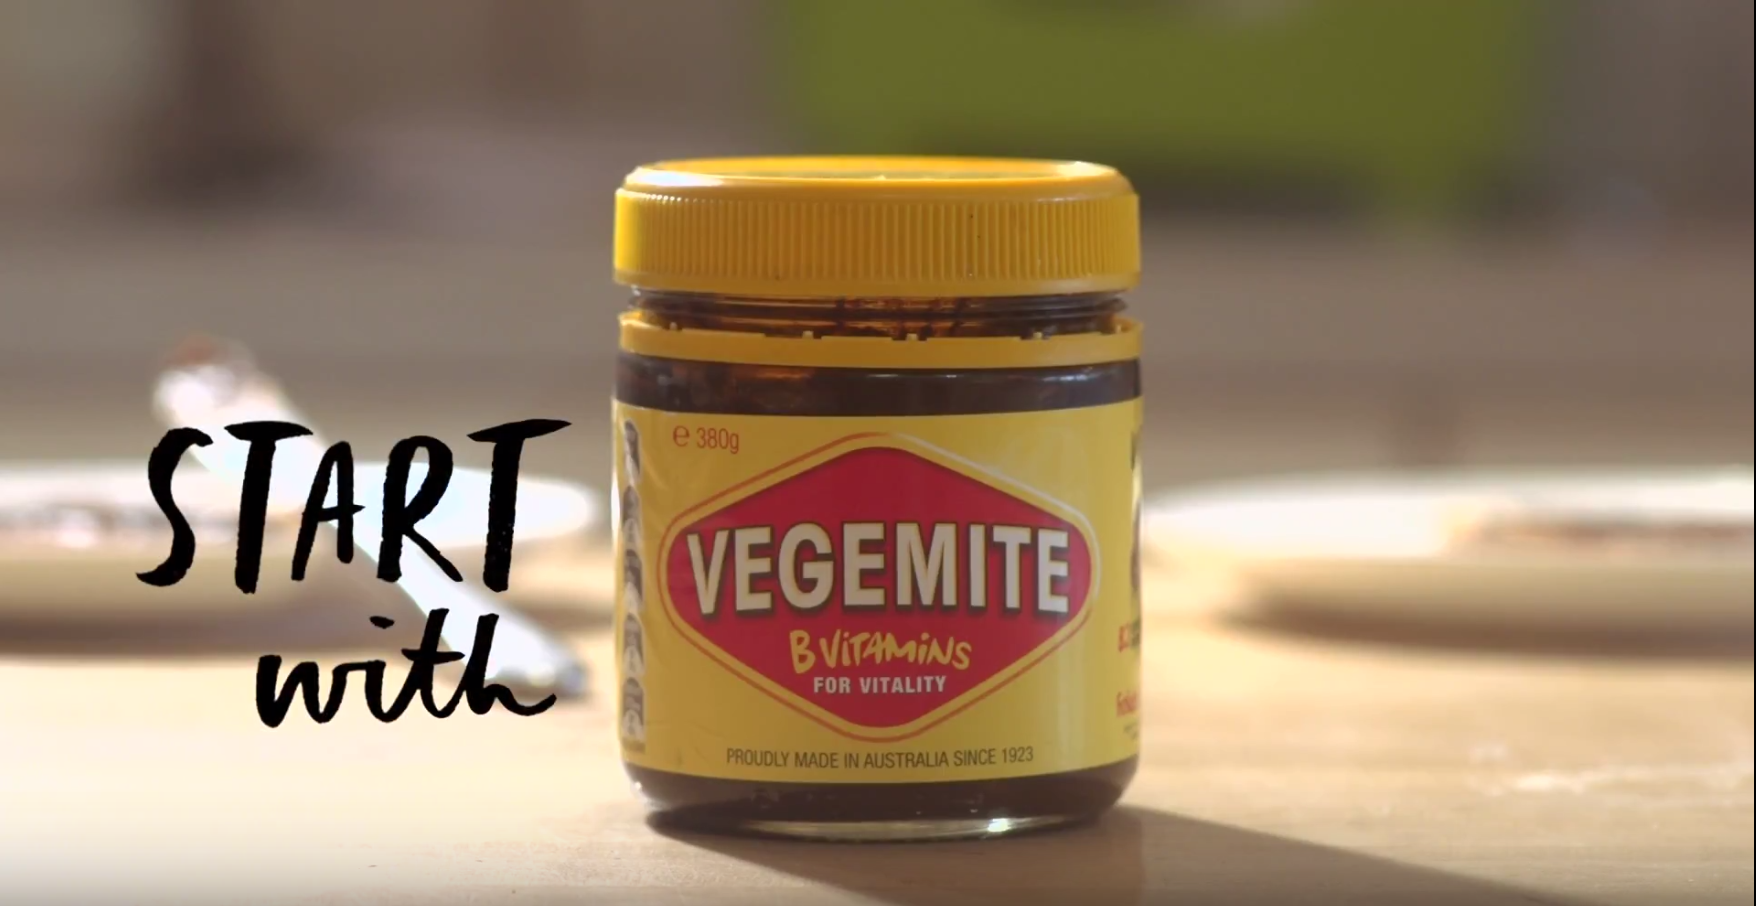 Start with vegemite